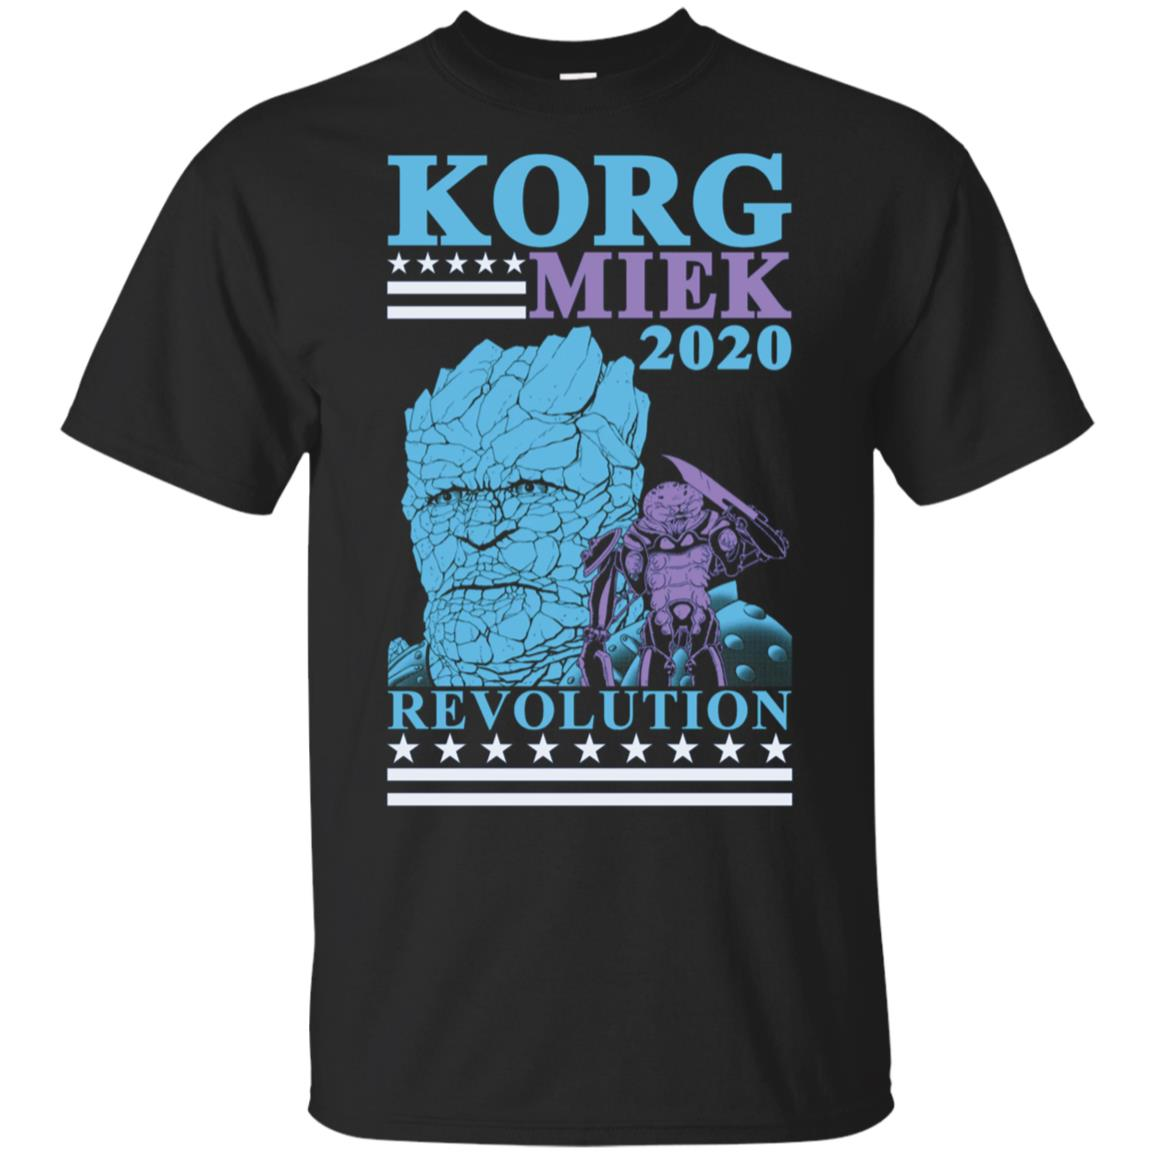 Korg Miek 2020 Revolution shirt